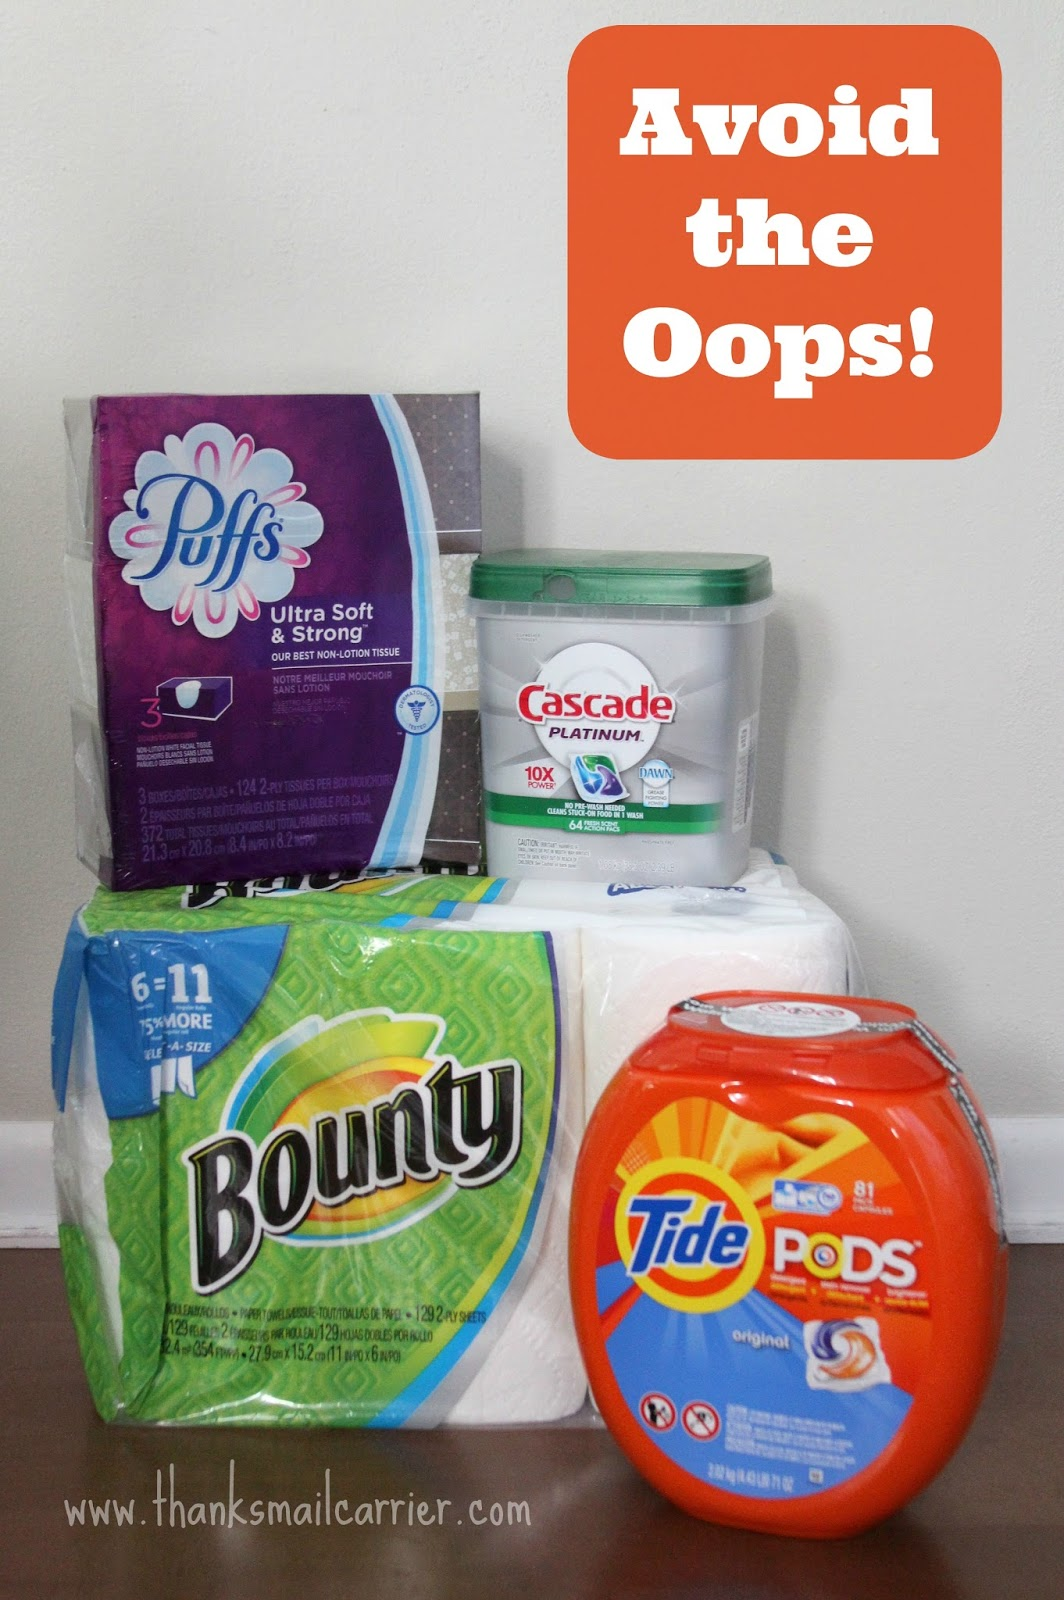 P&G at Walmart #AvoidtheOops